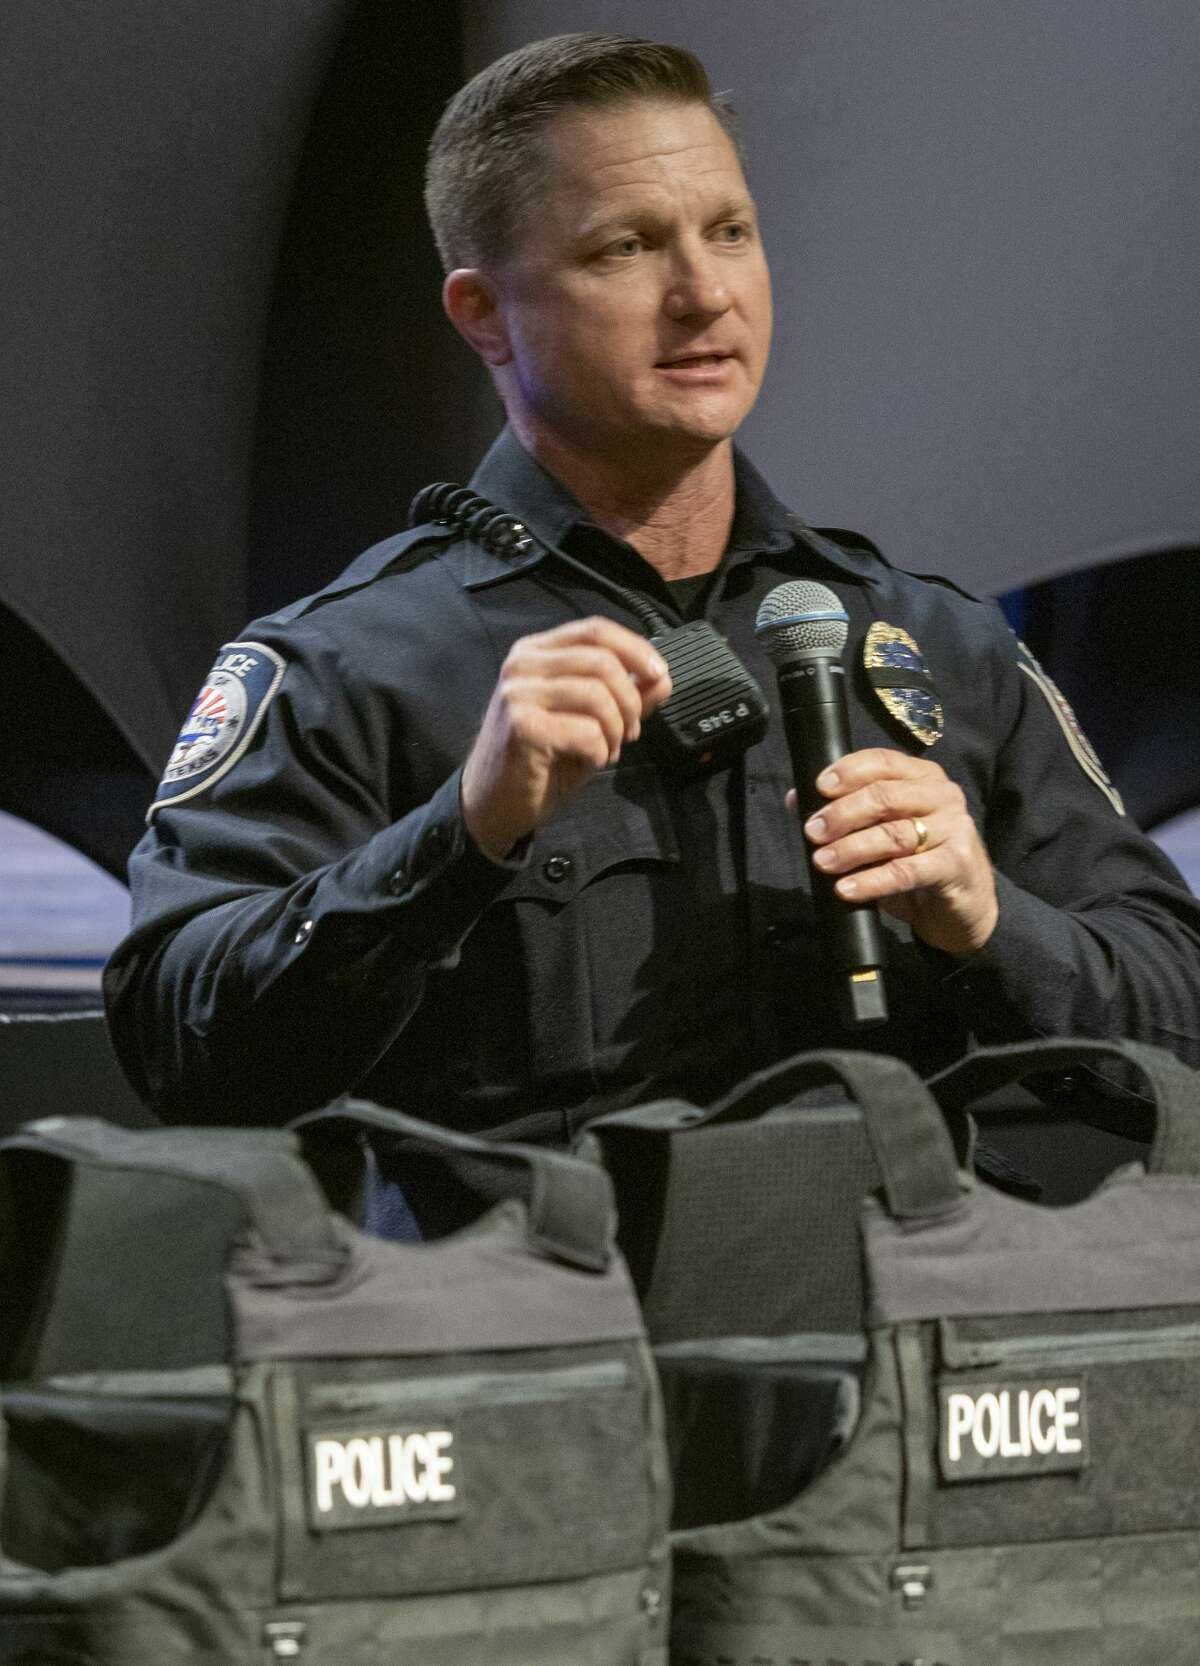 Midland Police Chief Seth Herman thanks the Midland community 01/14/2020 during the Shield 616 vest presentation at Stonegate Fellowship. Shield 616 helps organizes and raise money in the community to purchase new ballistic vests for first responders. Tim Fischer/Reporter-Telegram